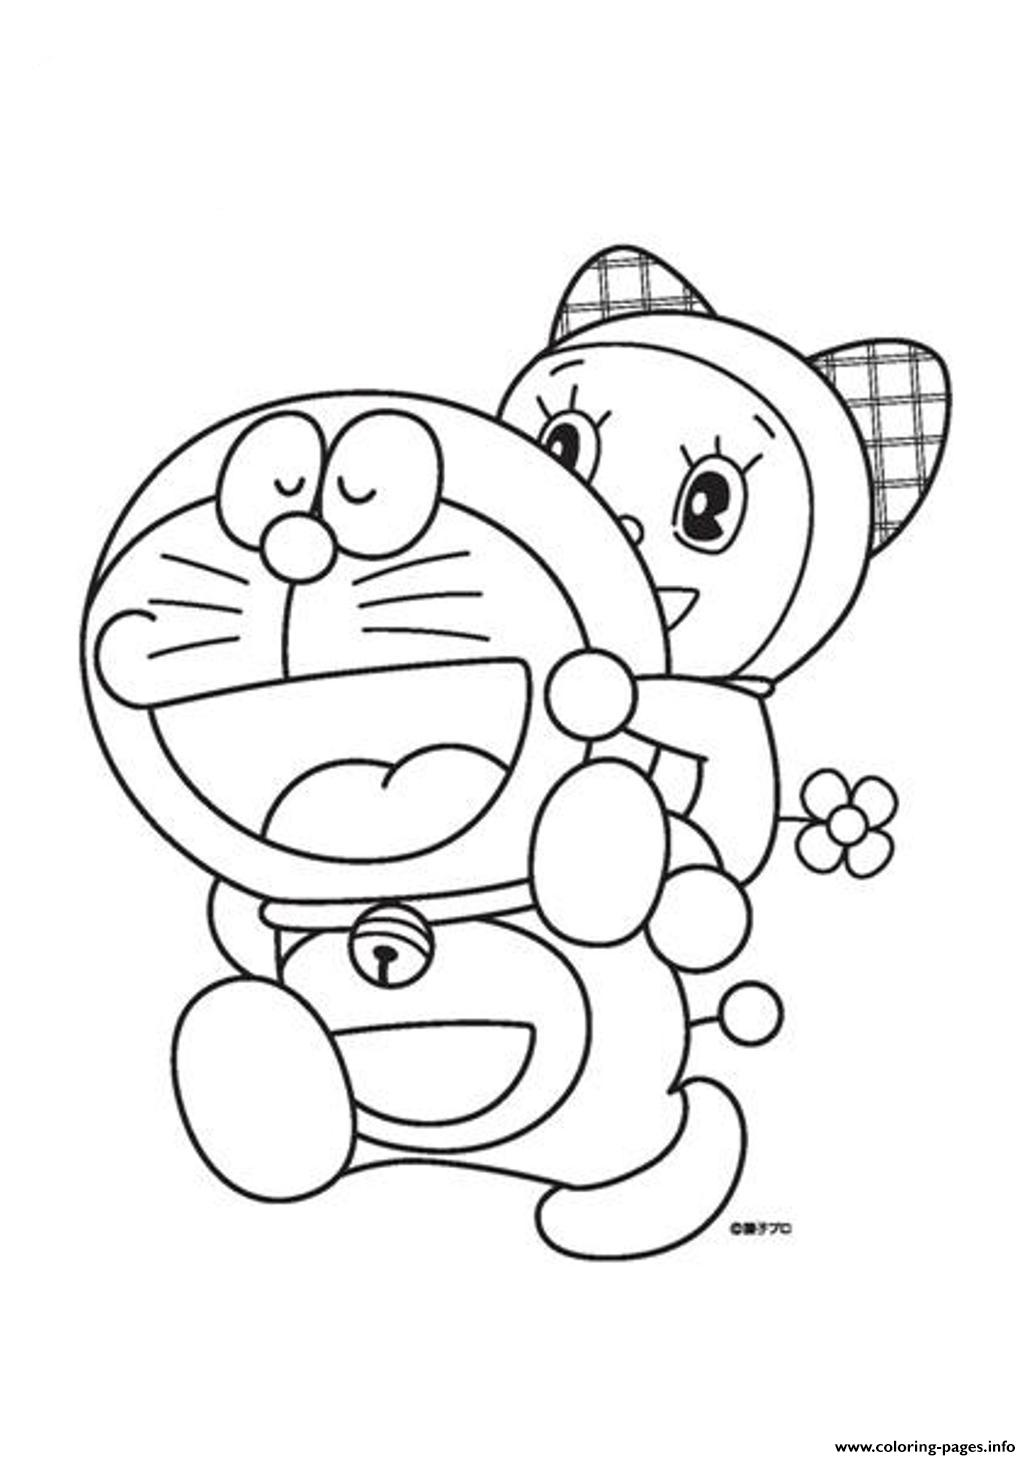 Cartoon S Doraemon For Kidsd6d2 Coloring Pages